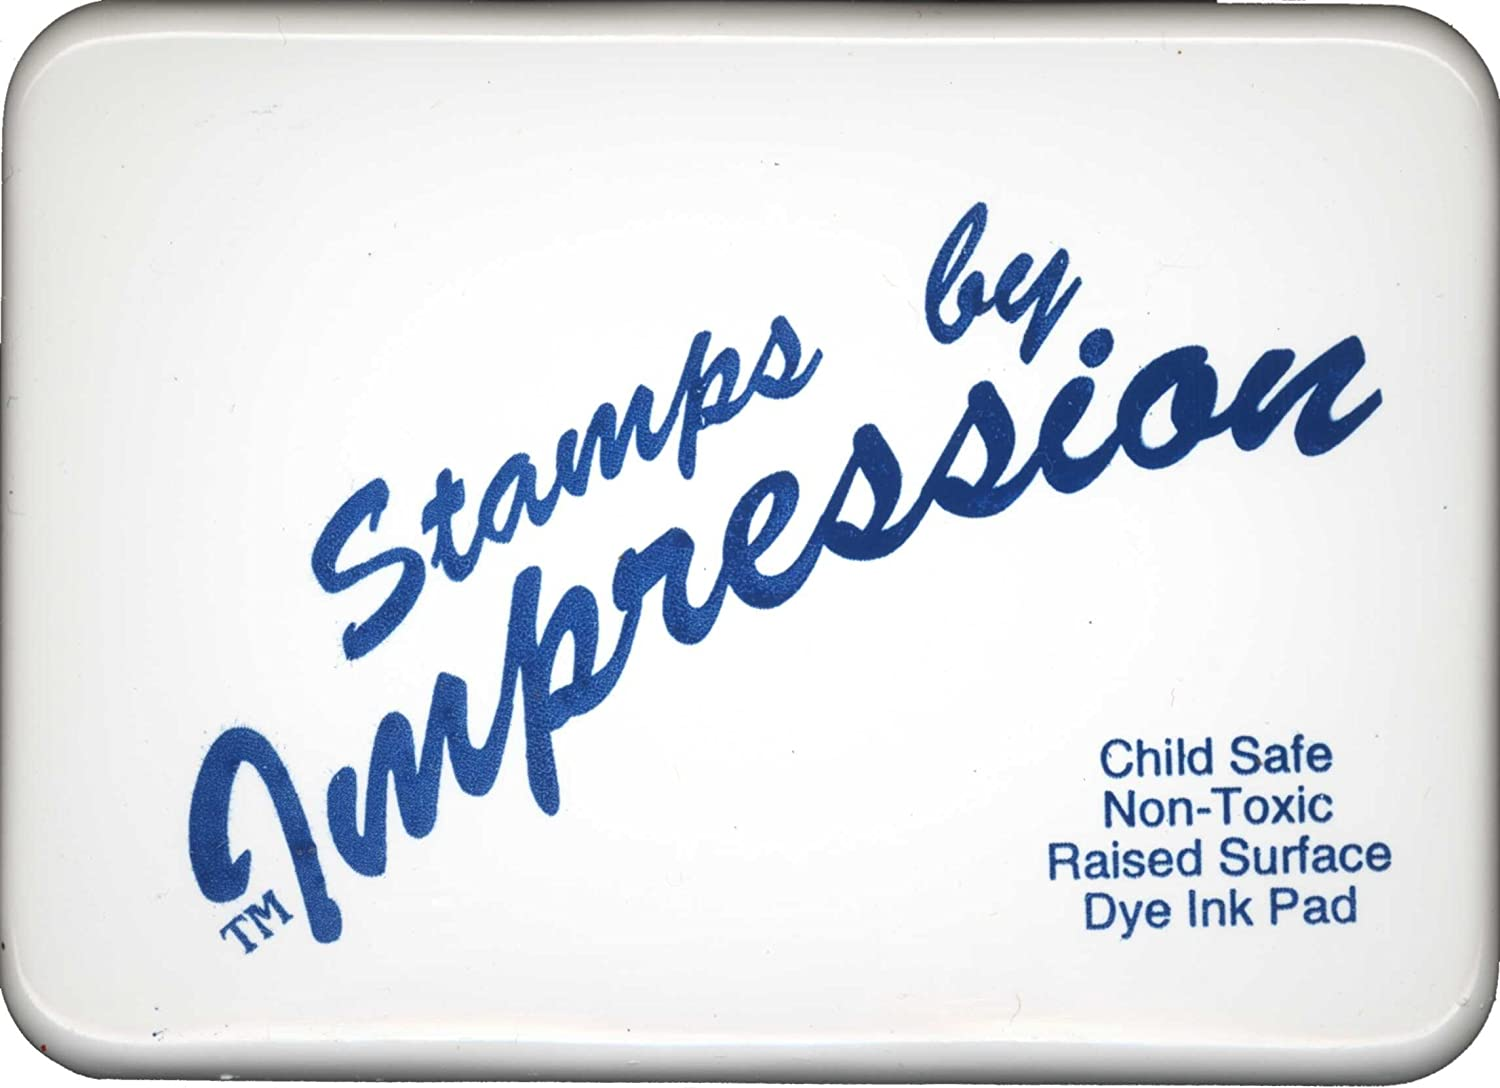 Stamps by Impression Houston Mall Child Safe Pad Ink Stamp Washable Lowest price challenge